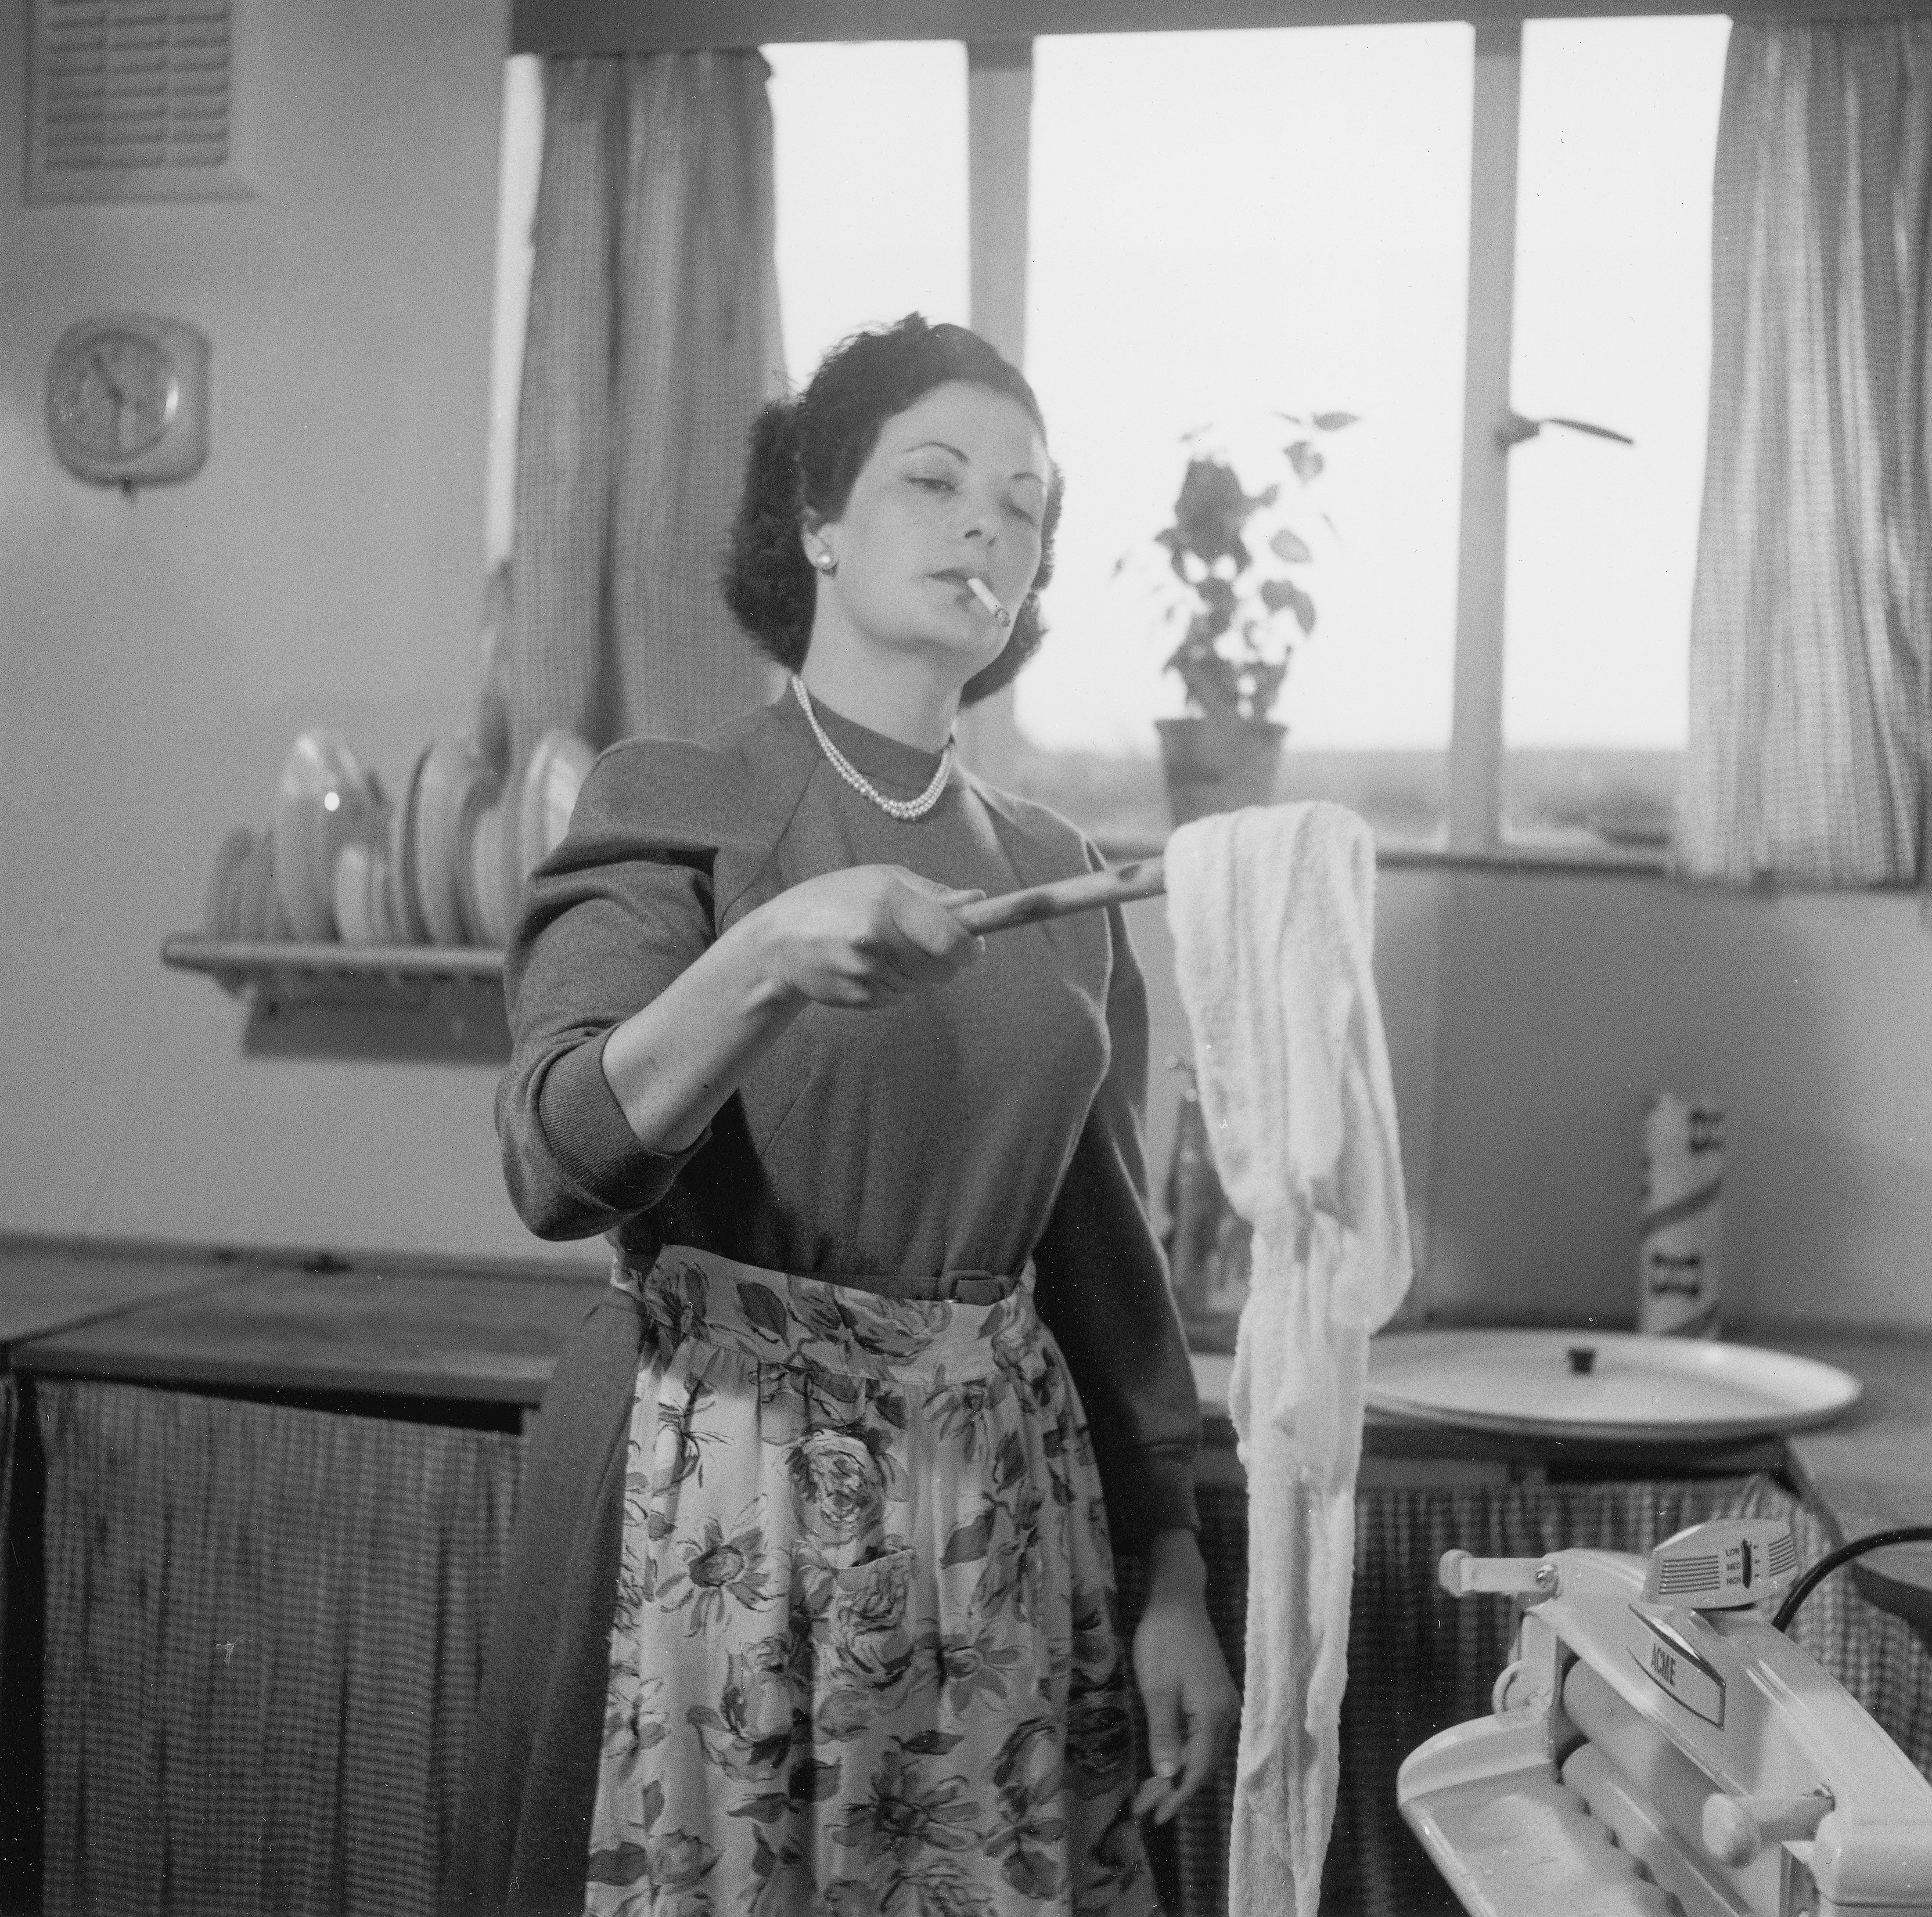 Housewife doing the laundry, 1954.